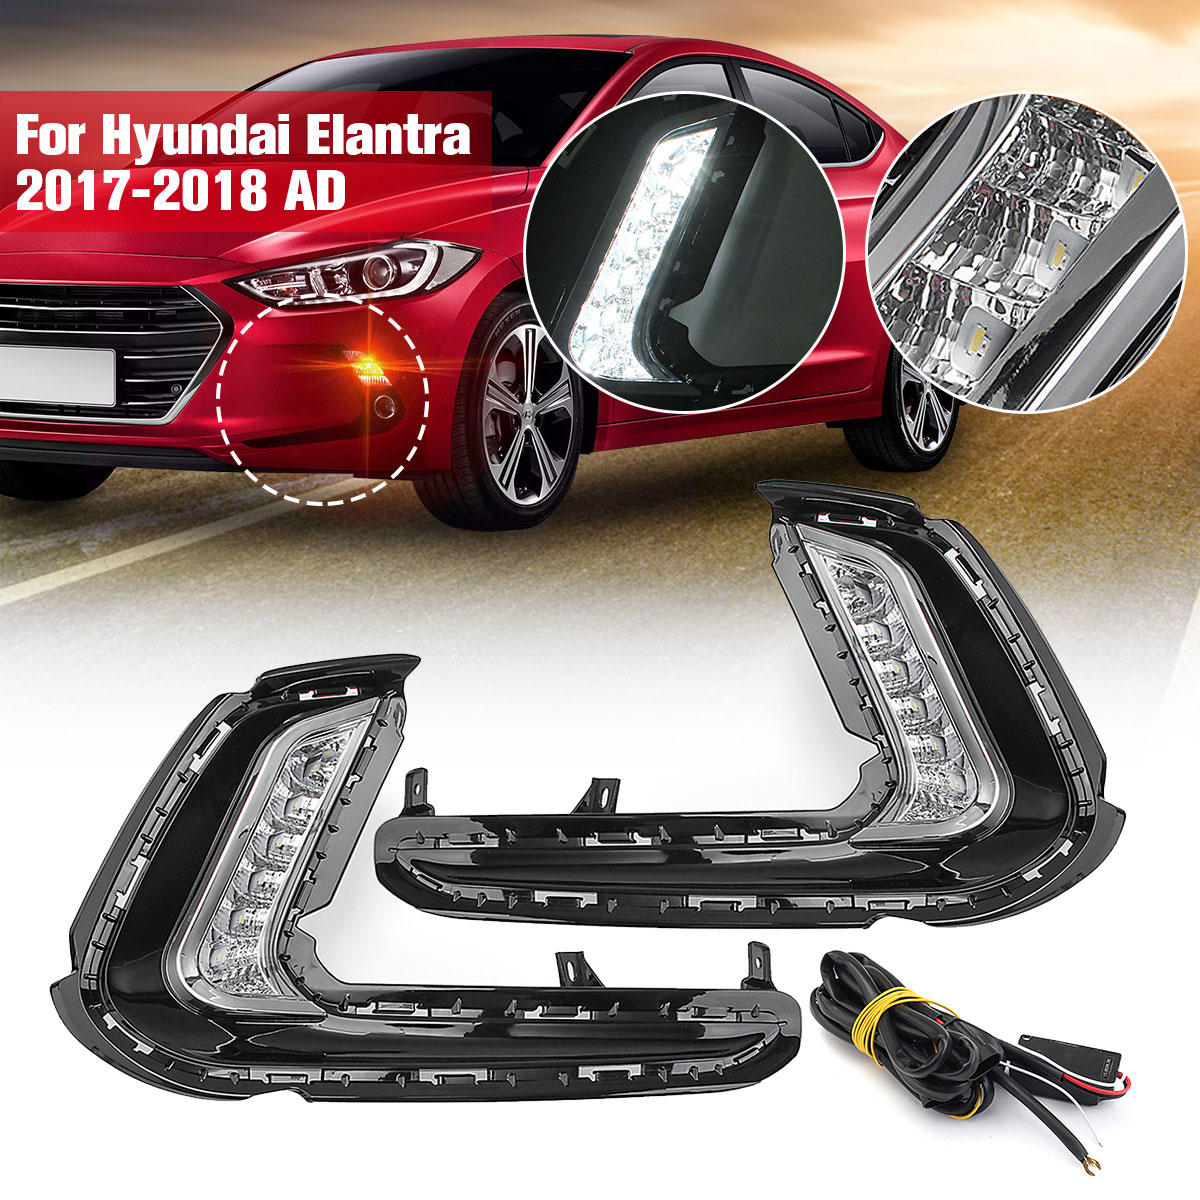 1Pair fog lamp DRL Signal light Daytime Running Lamp LED Fog Turn with yellow signal For Hyundai Elantra 2017-2018 AD 12v car led drl daytime running light fog lamp cover with turn signal light for hyundai elantra 2016 2017